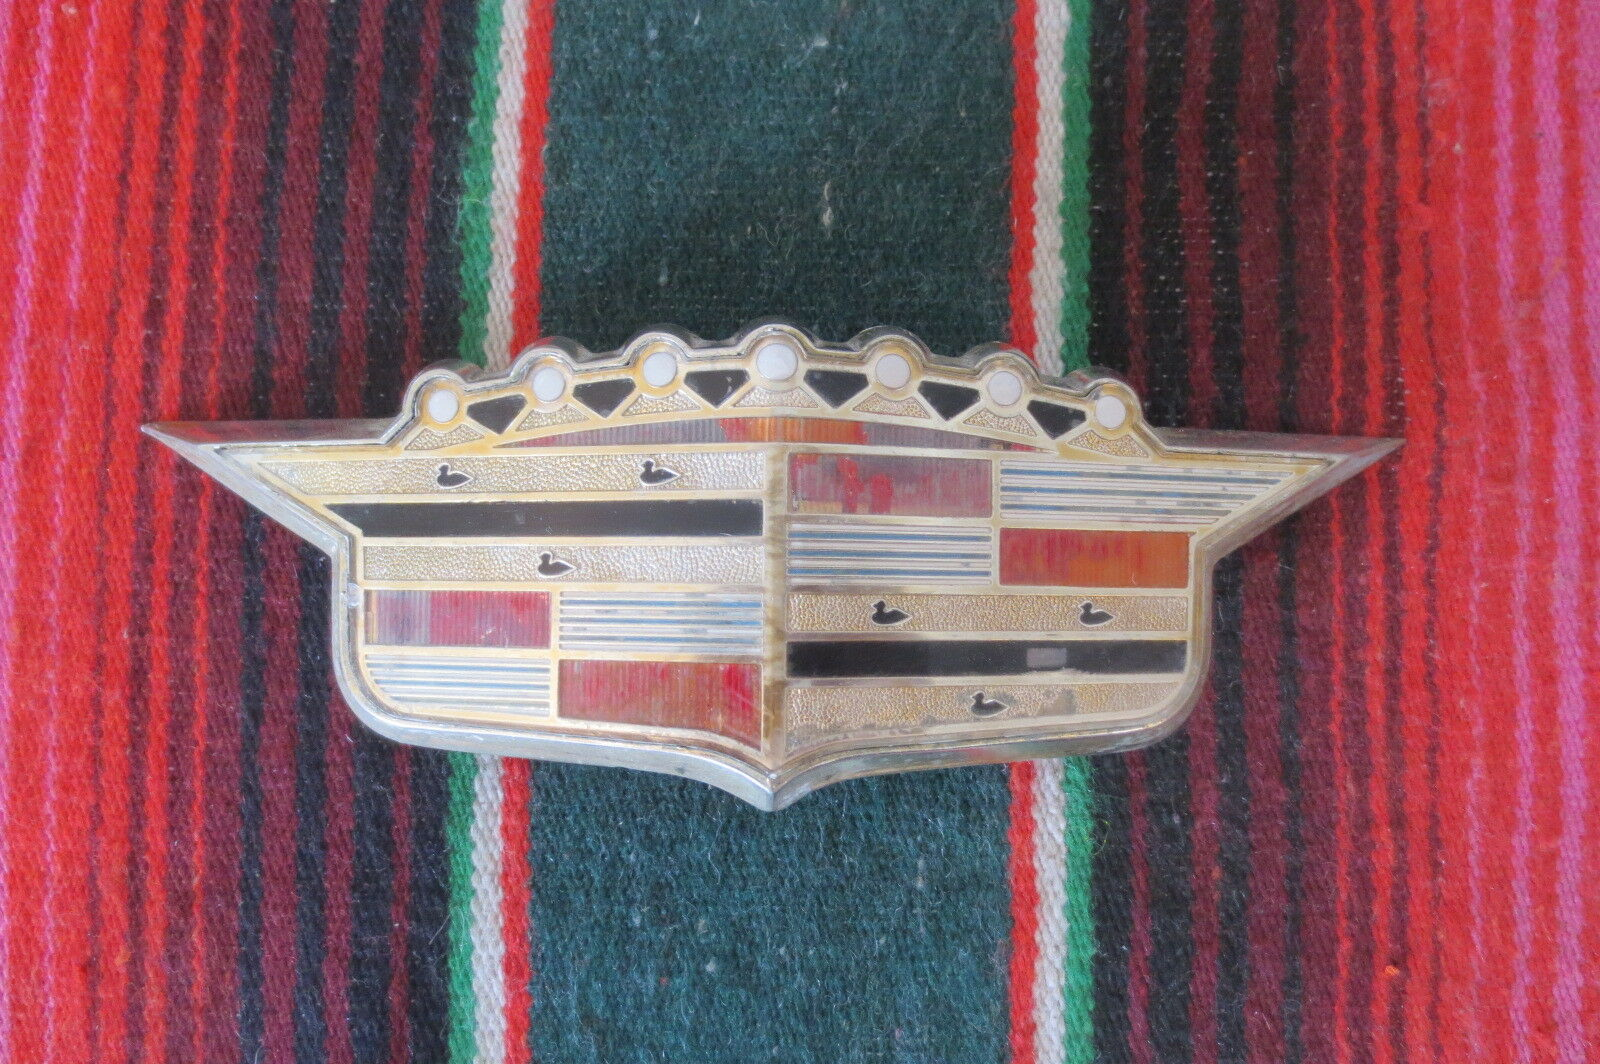 1950s Cadillac Hood Trunk Emblem Crest Ornament Badge Decal Chrome 1950 Reproduction Wiring Harness 1 Of 7free Shipping